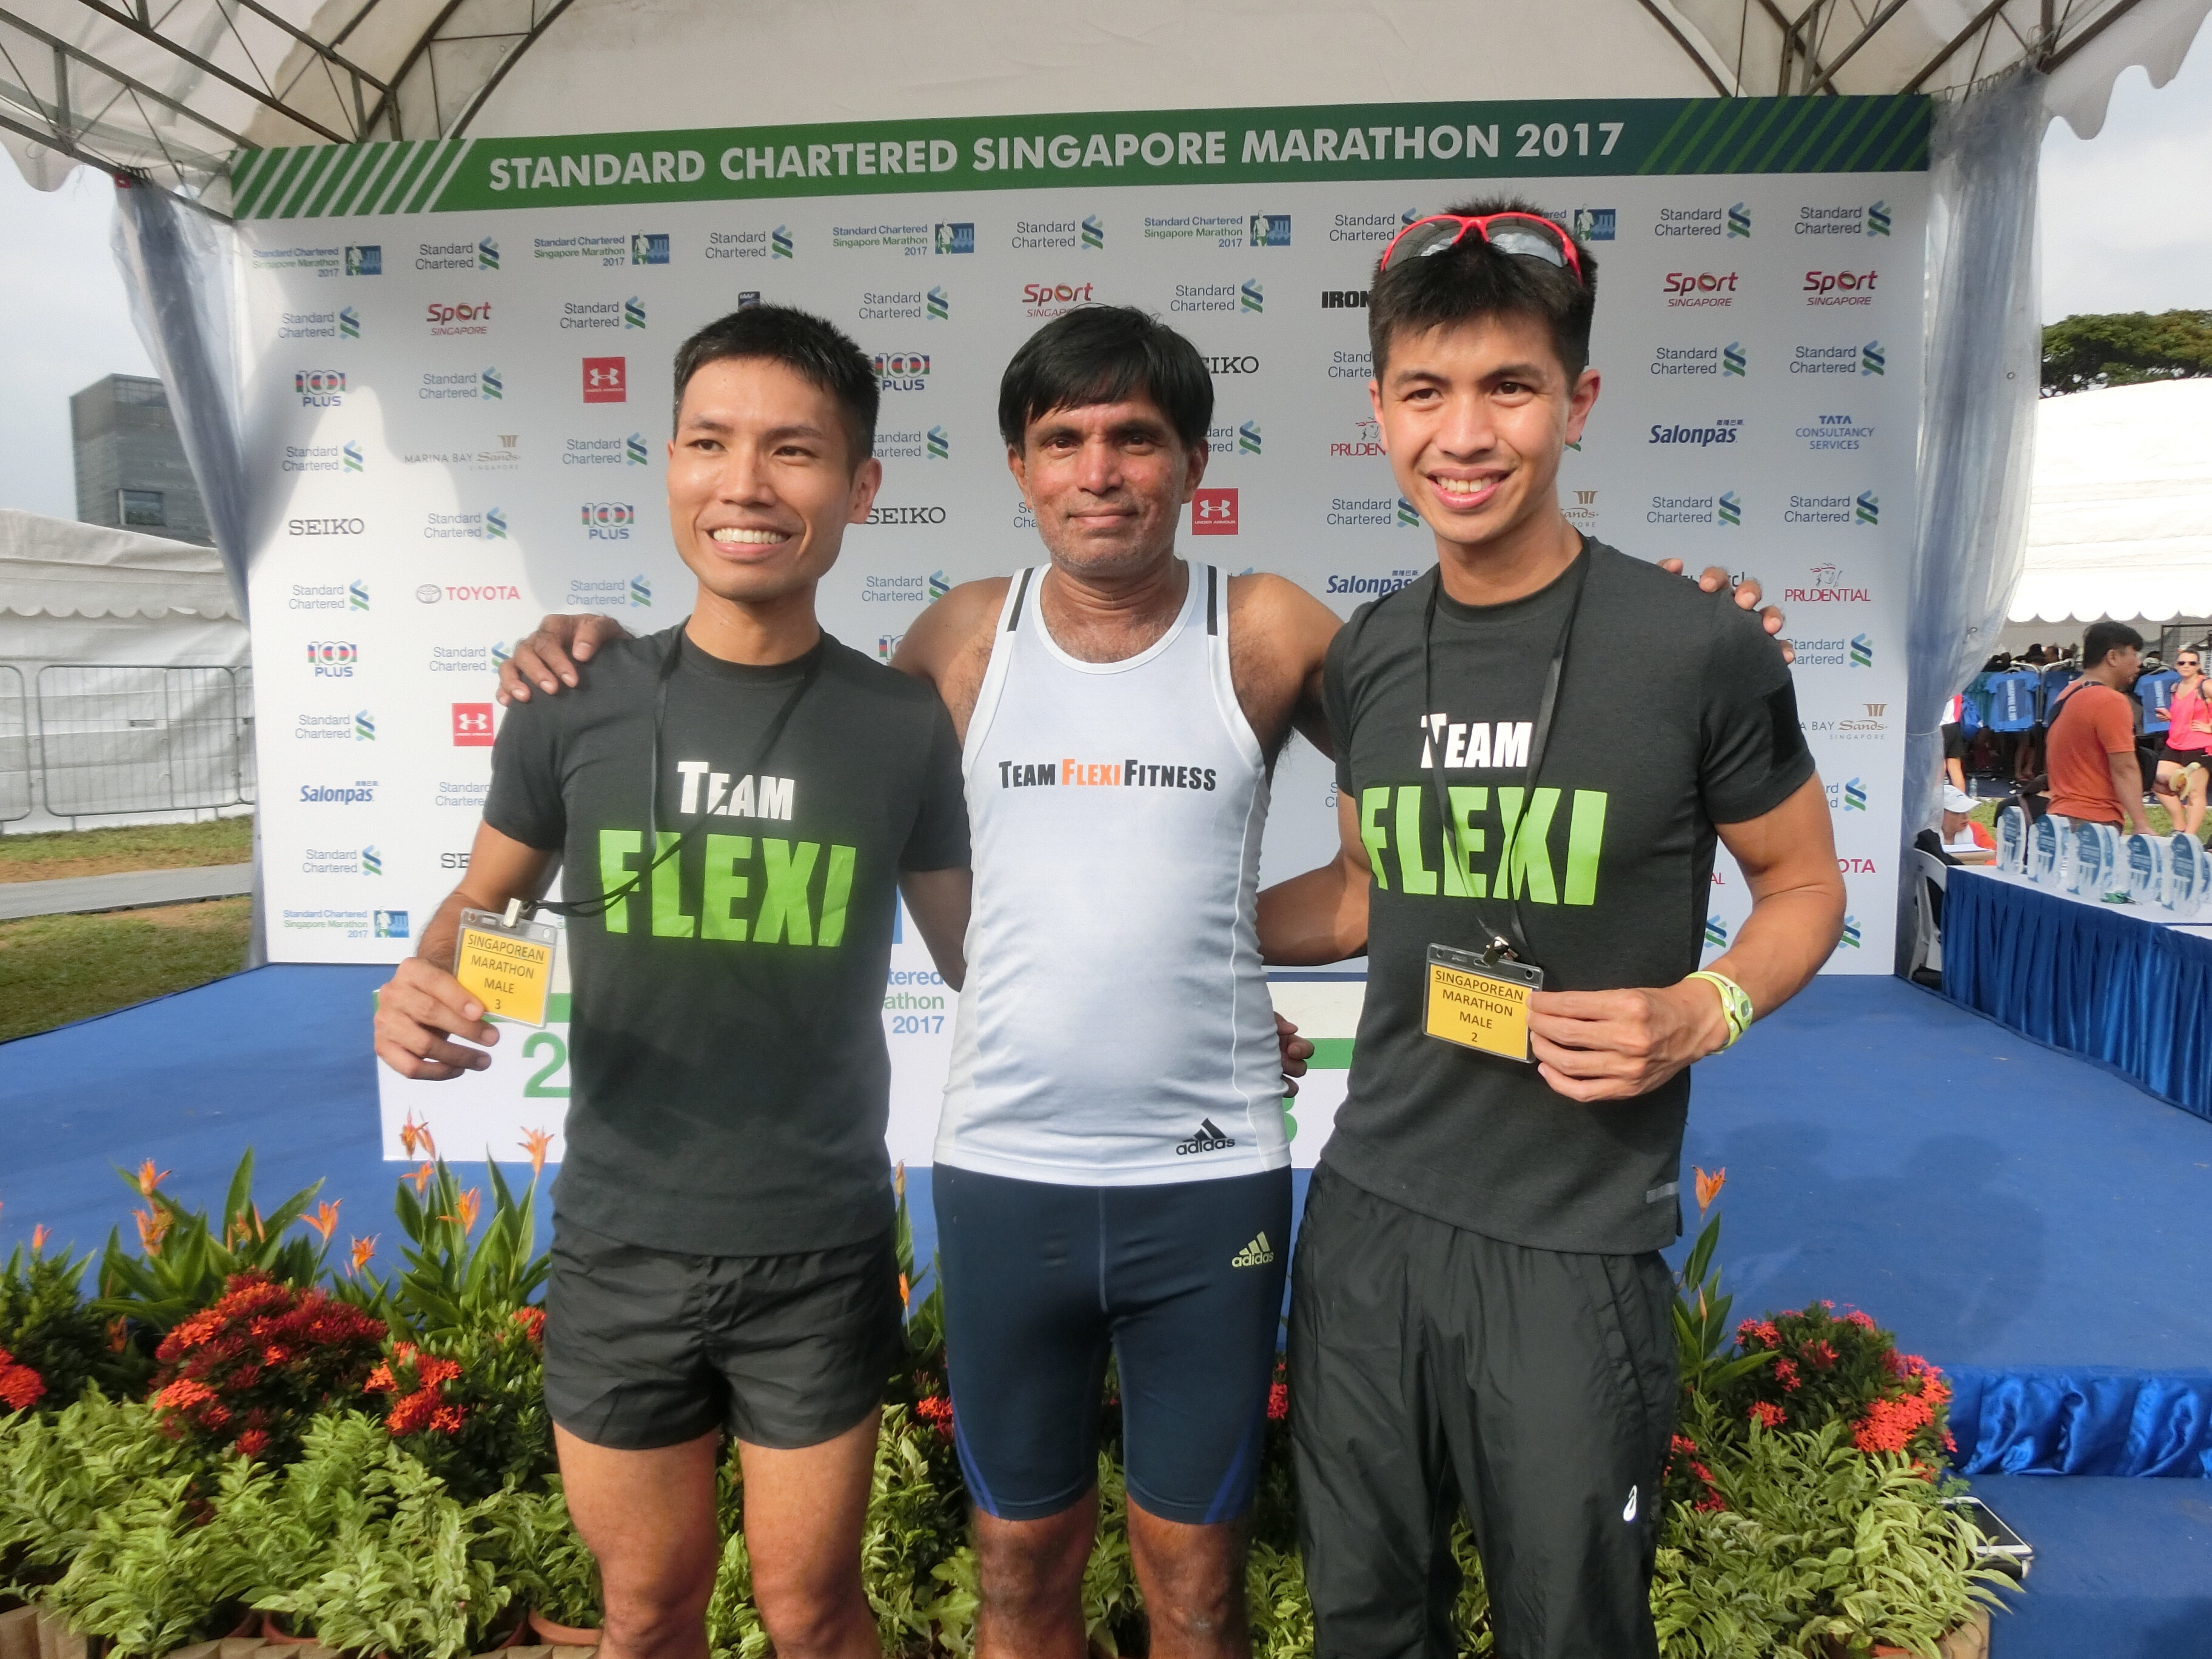 1st runner-up Ashley Liew (right) and 2nd runner-up Evan Chee (left) together with their Team Flexifitness coach and reigning Singapore marathon national record holder M. Rameshon (centre)